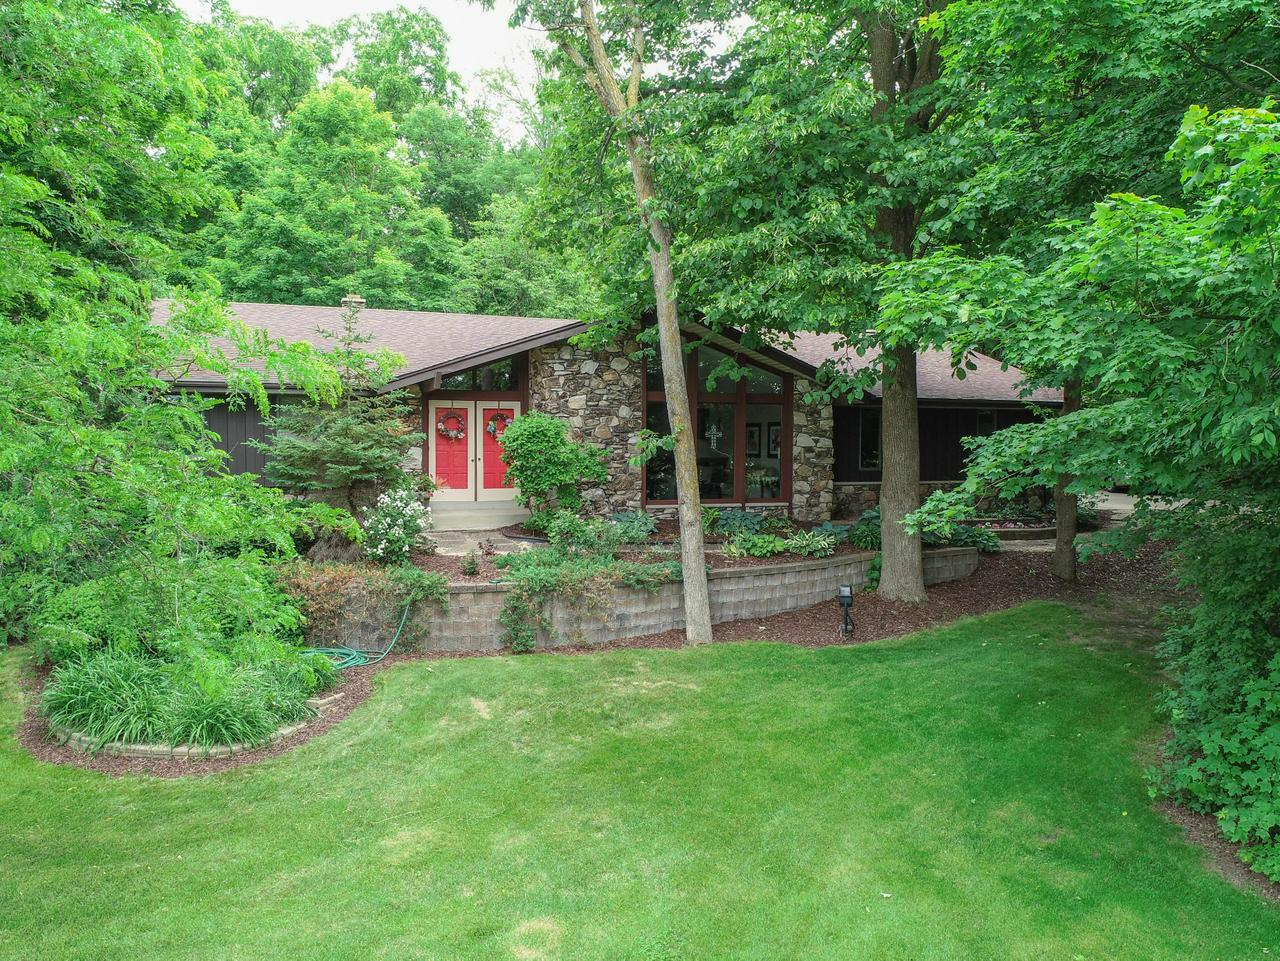 Beautiful, Well Maintained, 4BR Contemporary Ranch home on spacious 3/4 Acre private Lot in Heather Ridge Subdivision!!  Ray Prell Design. Freshly Painted Ext. Spacious sunken LR w/cathedral ceilings, huge front wins.  DR w/built-ins. Updated KIT w/new stone backsplash, granite counters, & updated cabs, ceramic tile floors, recessed lighting, bay win. Family Rm w/stone GFP, new insert, patio drs. 4 Spacious BR's, MBR w/updated MBA. Full BA w/new tile surround. New Doors. 1st Fl utility.  Huge RecRm w/bar, full size wins. Awesome private yard w/shed, Heated Inground Pool, hot tub. MUST SEE!!